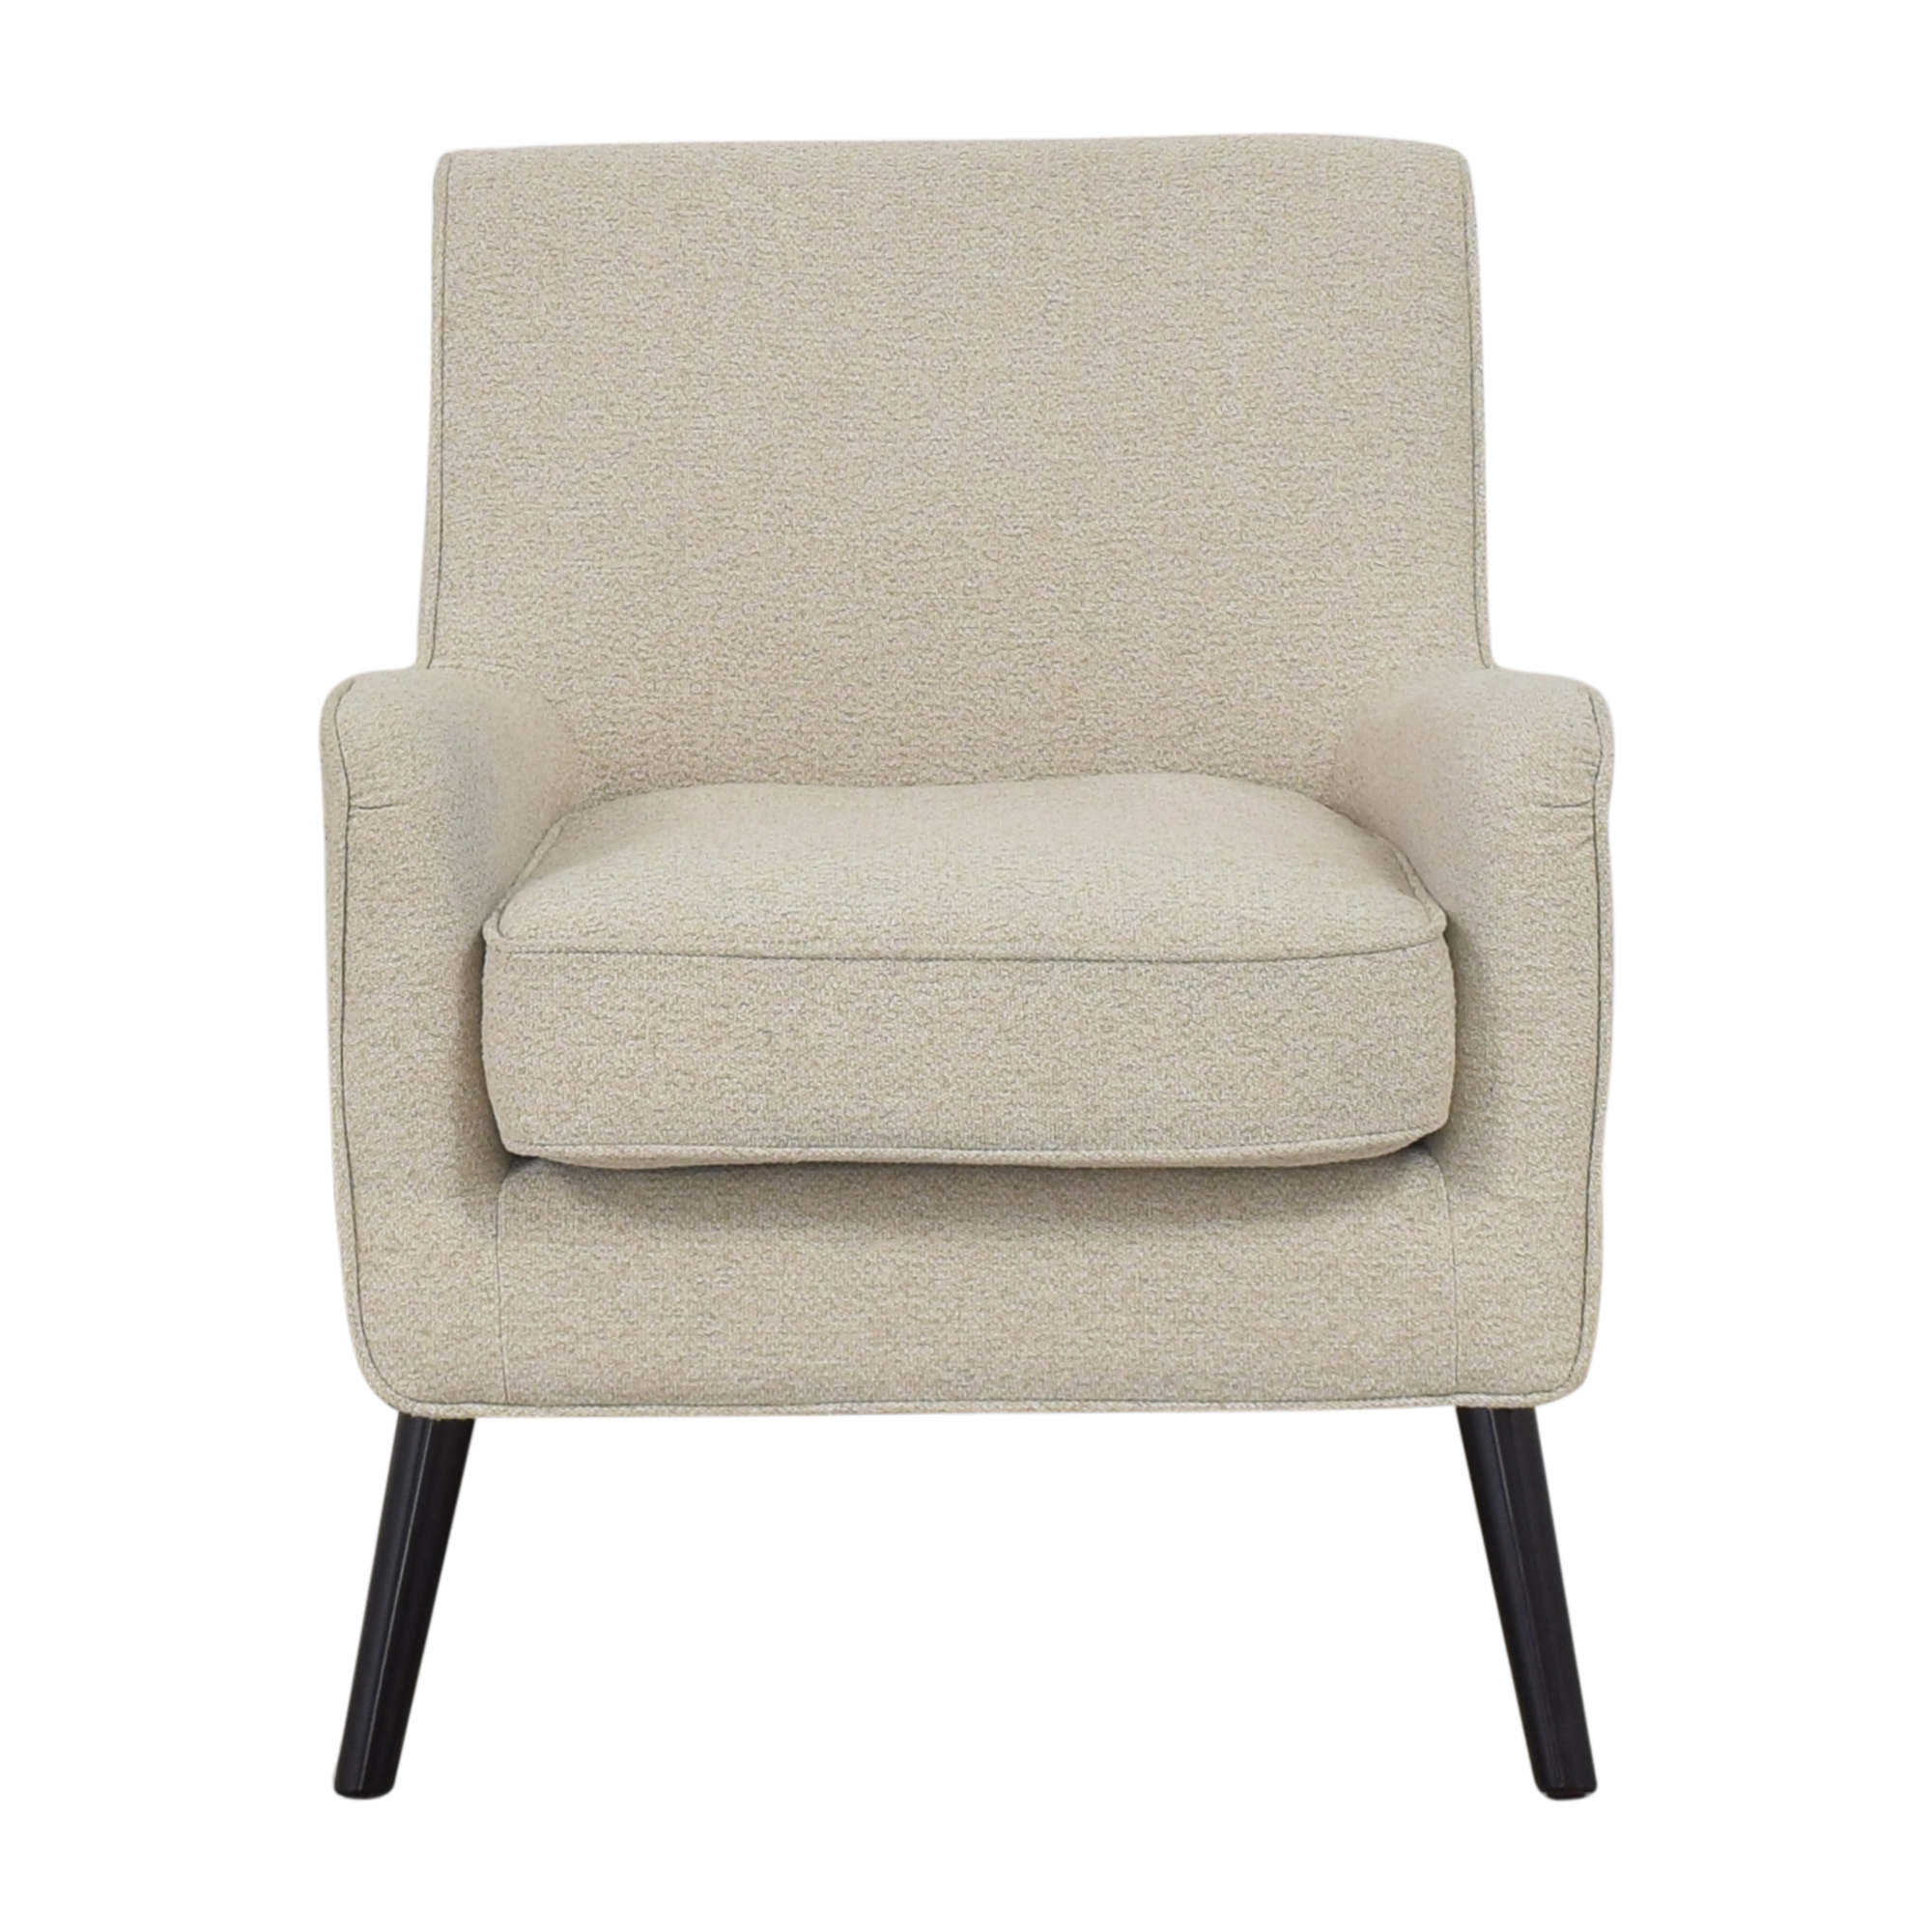 West Elm West Elm Book Nook Armchair on sale